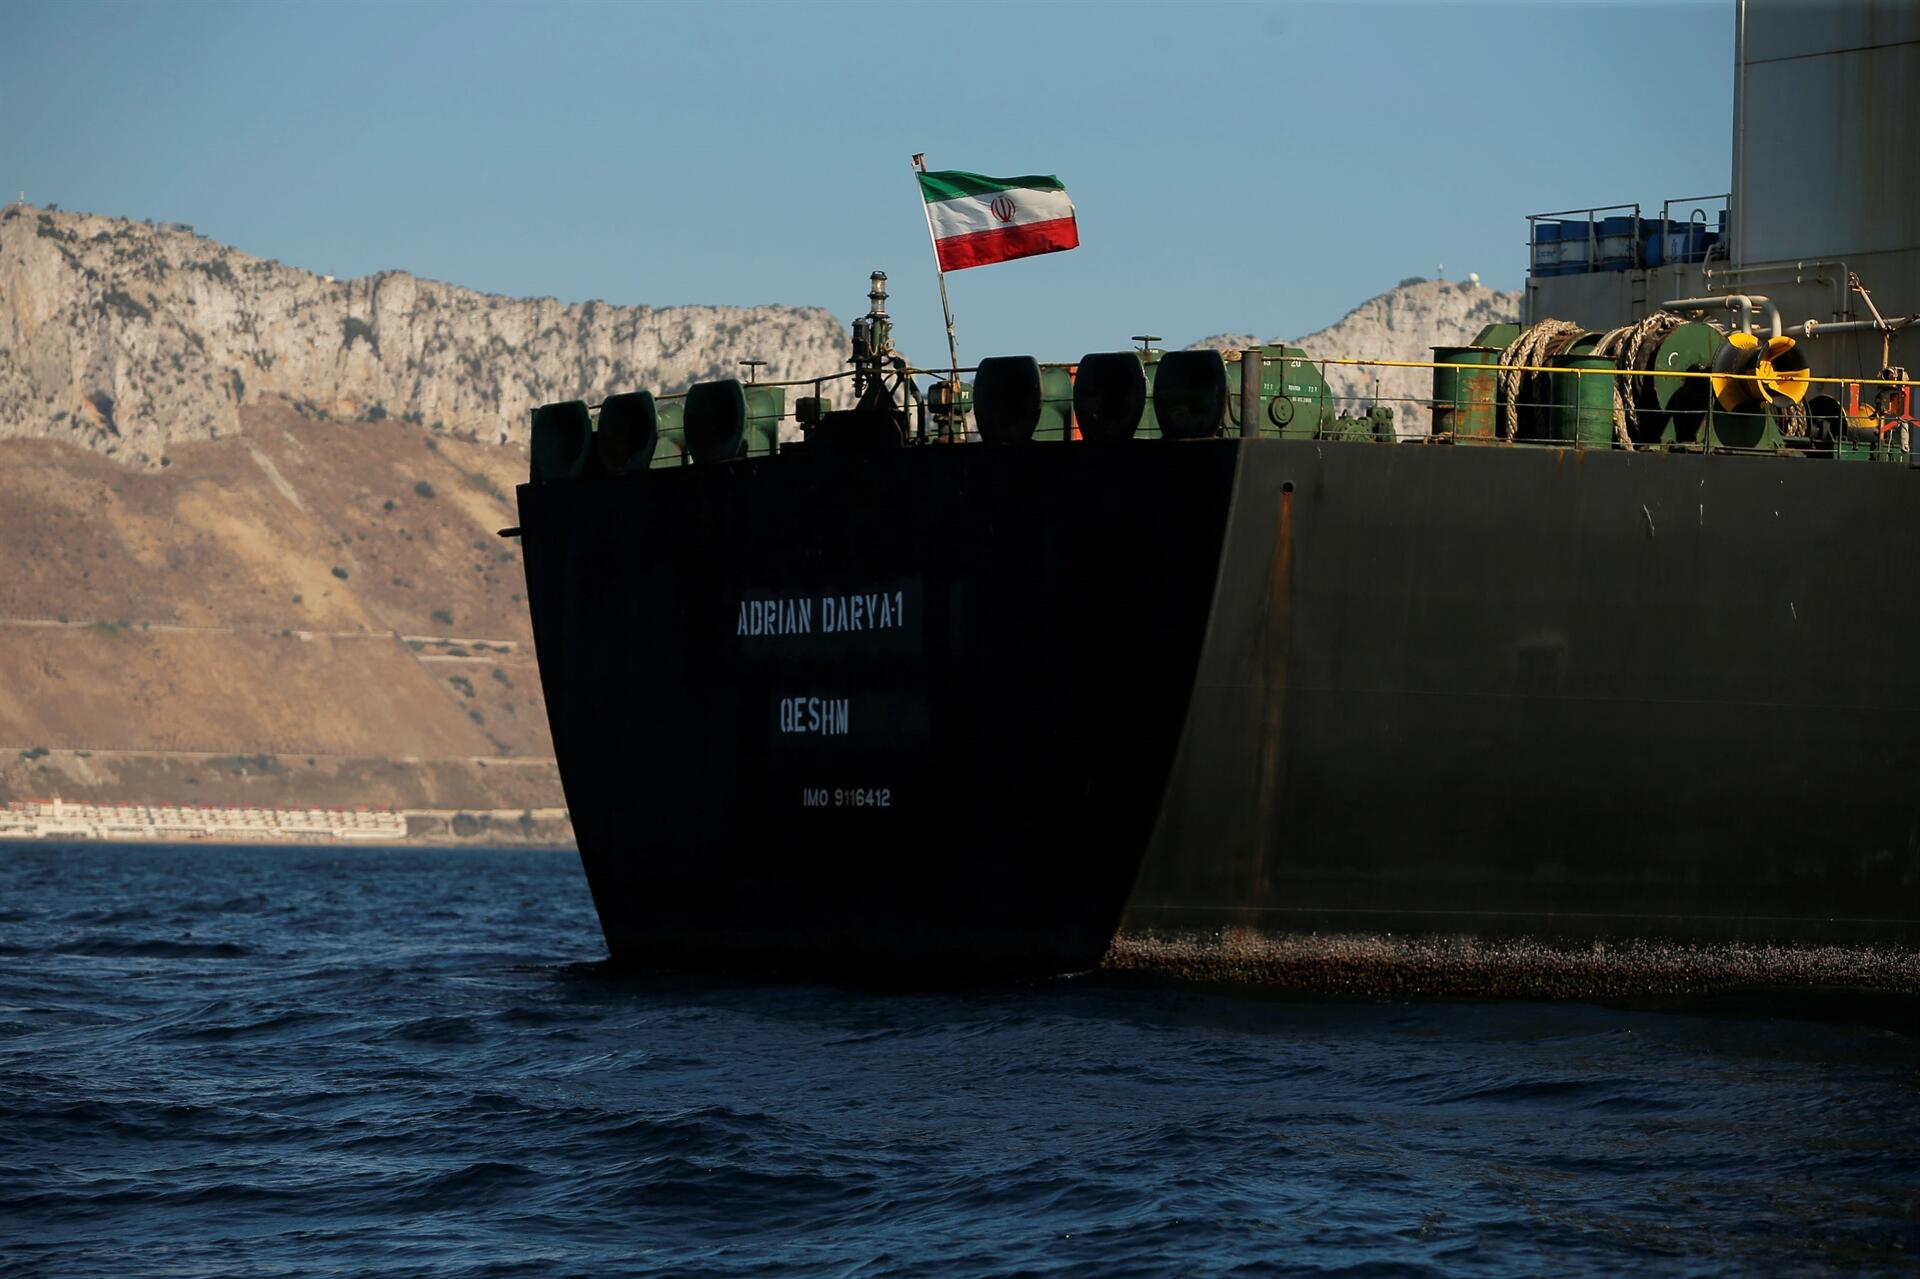 US Threatens Greece Over Adrian Darya 1, Another Iranian Tanker Allegedly Prepping To Deliver Oil To Syria